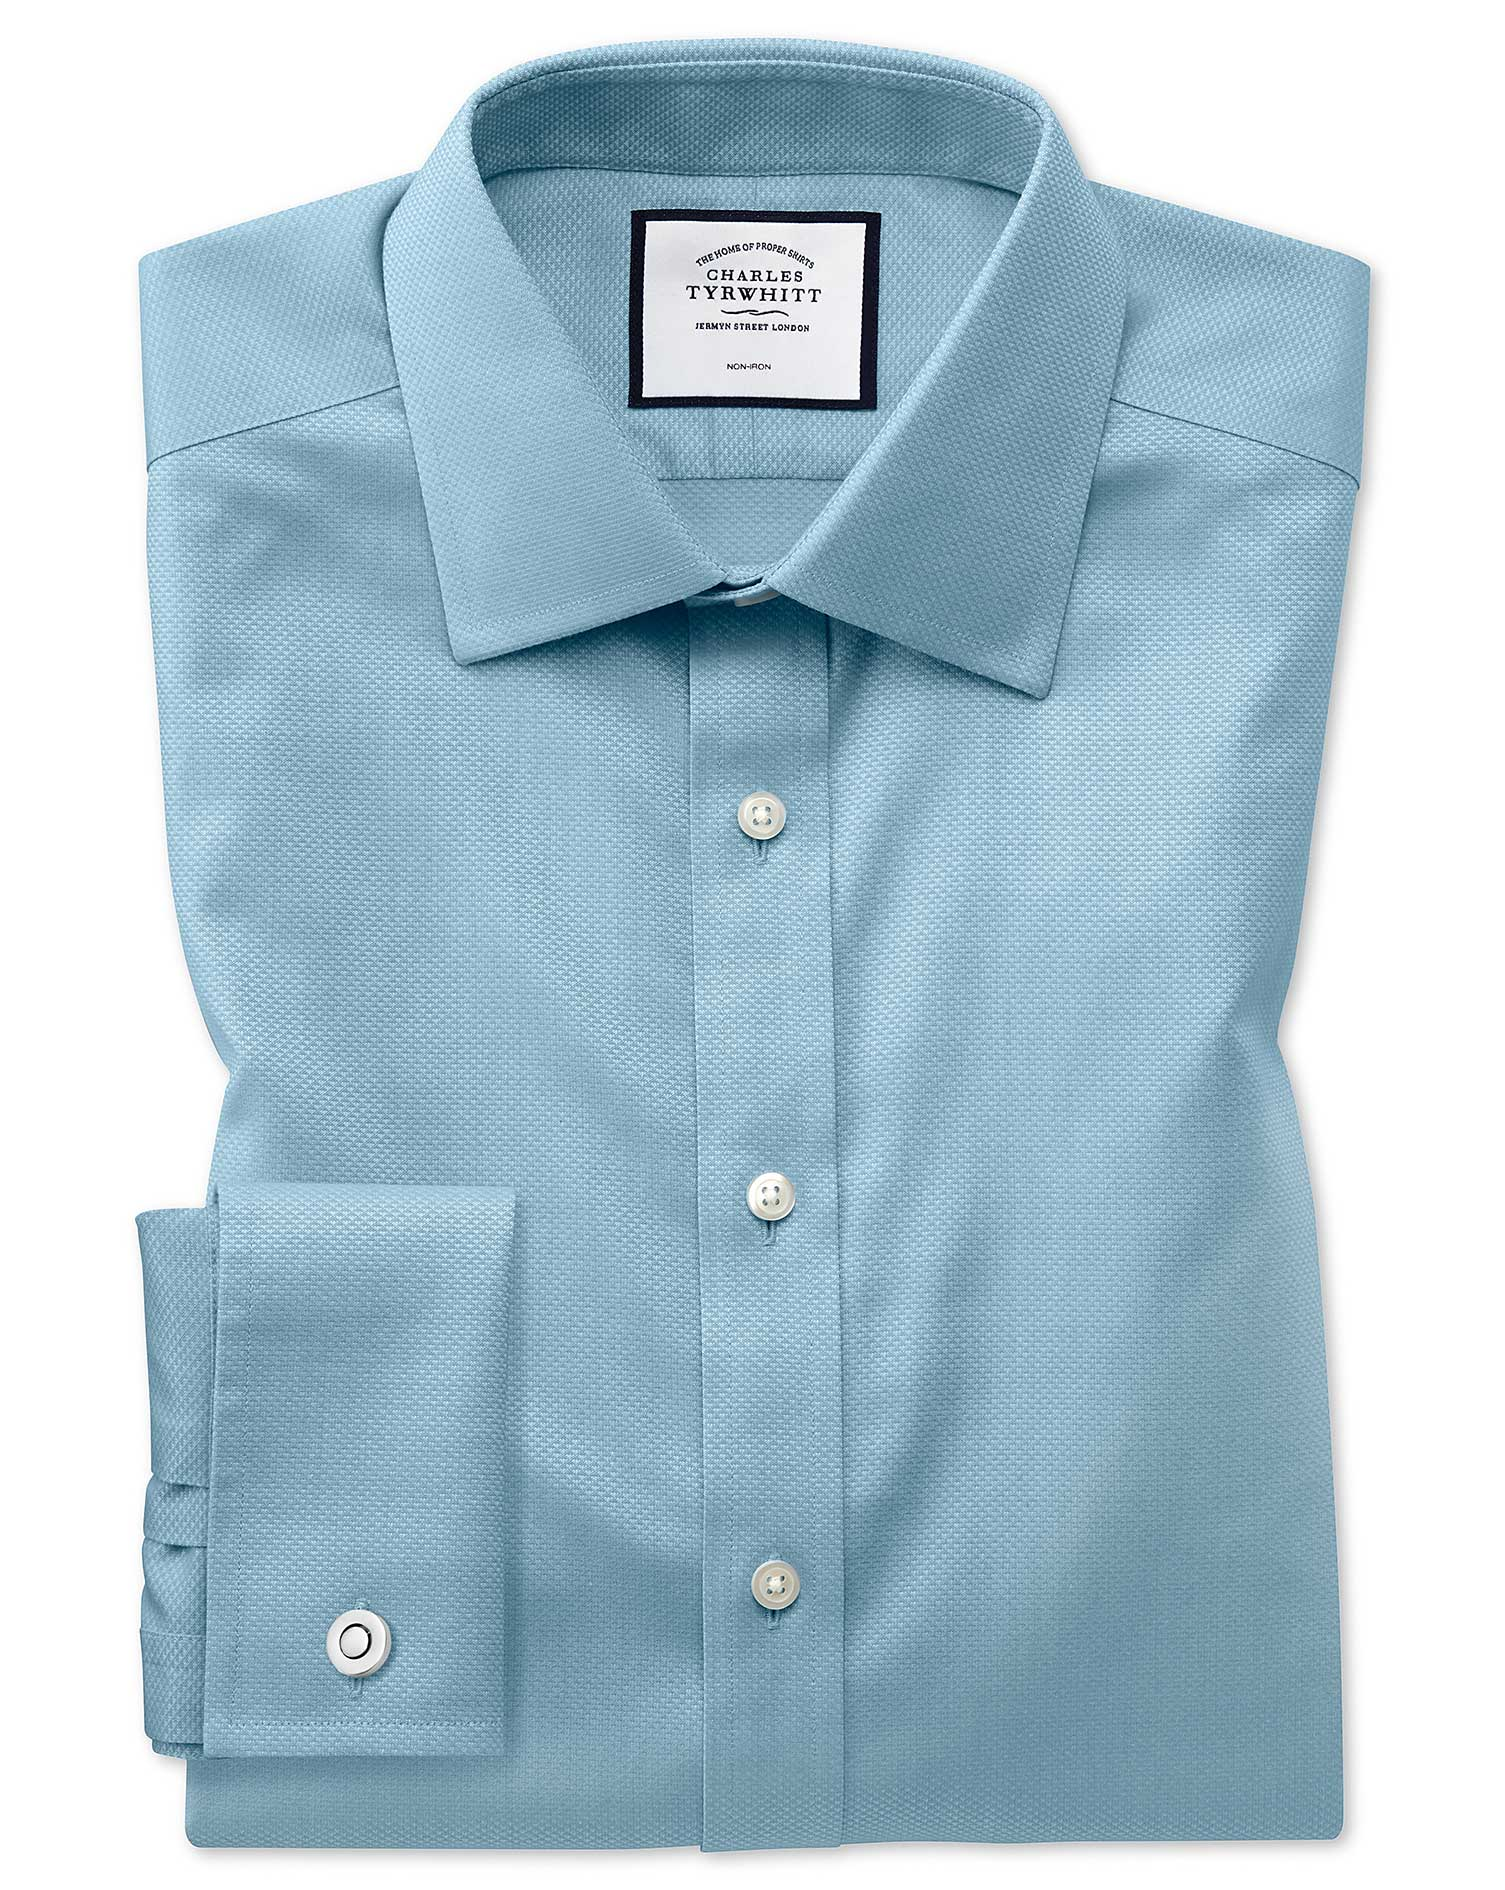 Extra Slim Fit Non-Iron Teal Triangle Weave Cotton Formal Shirt Double Cuff Size 17/36 by Charles Ty